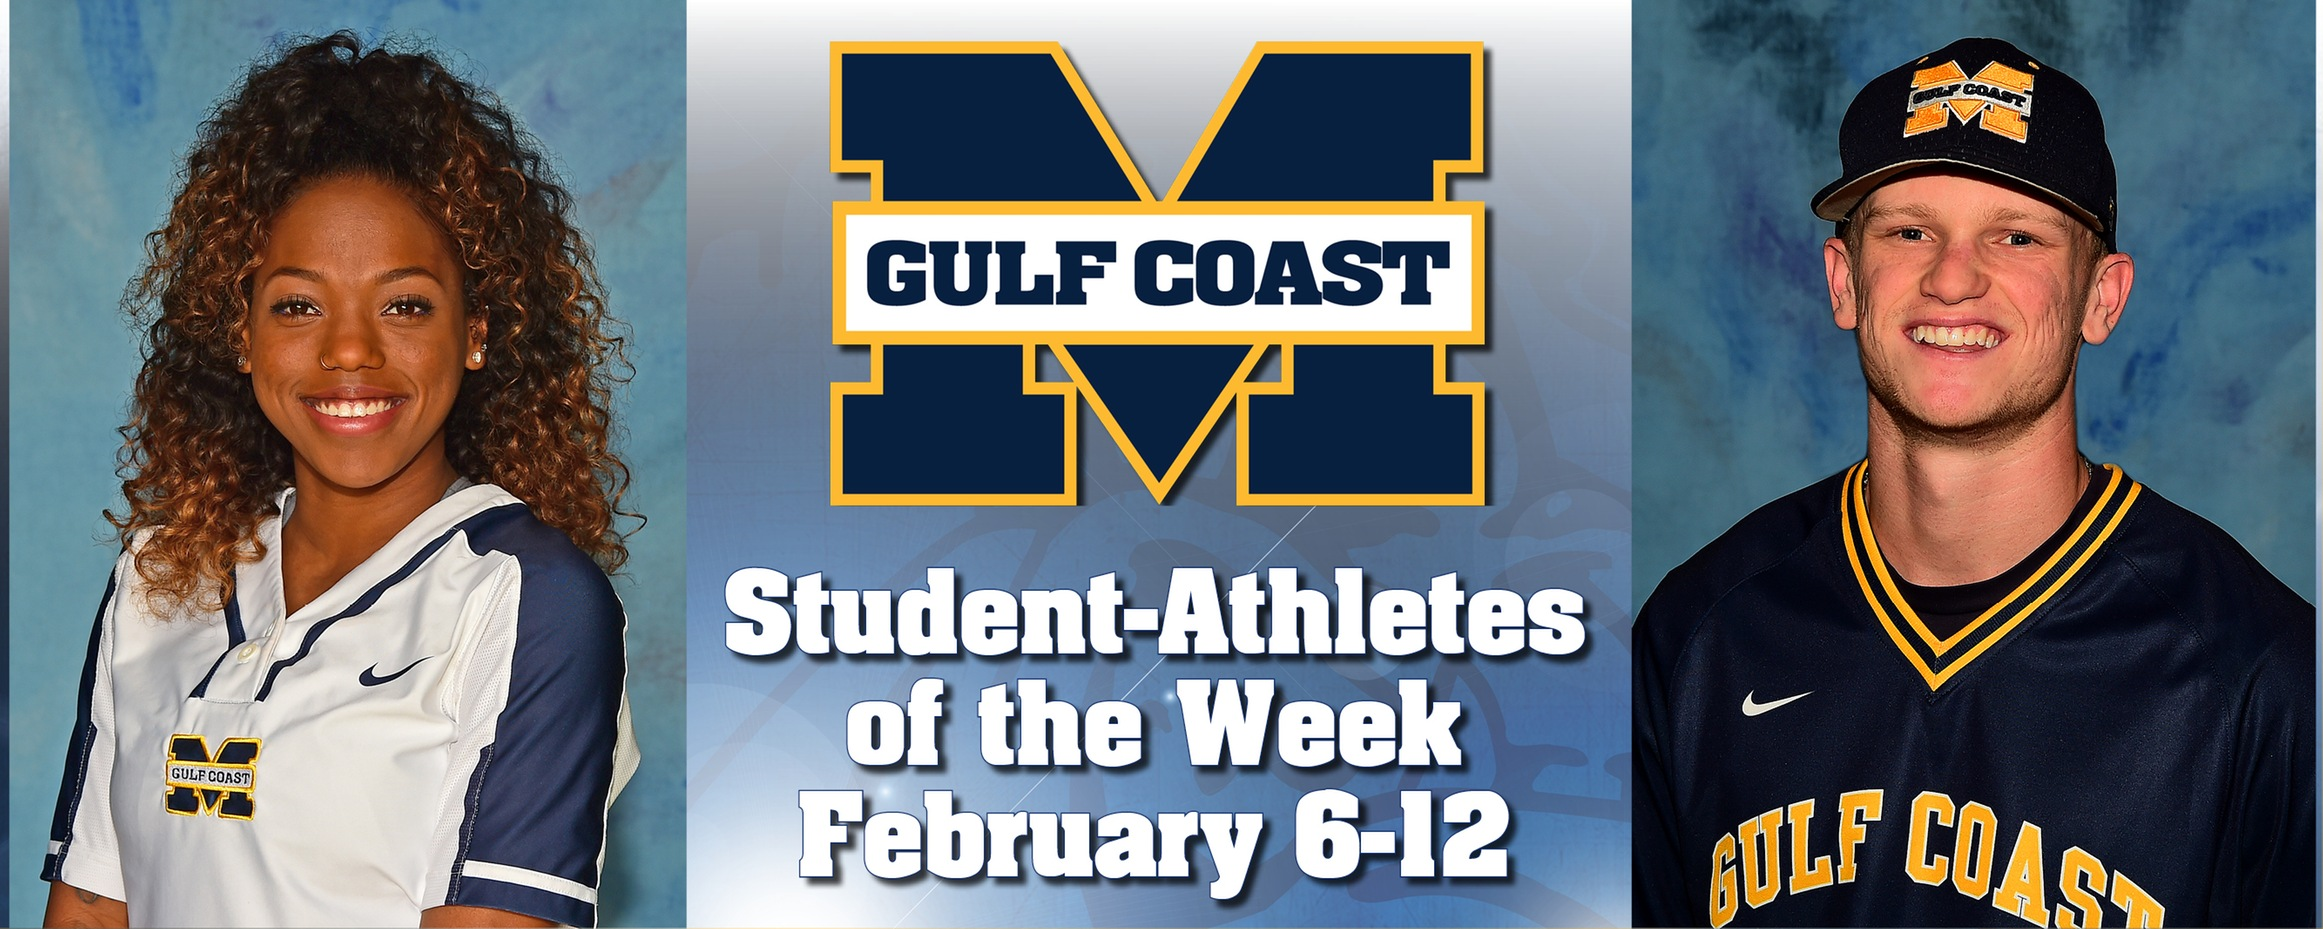 Triplett, Evans named MGCCC Student-Athletes of the Week